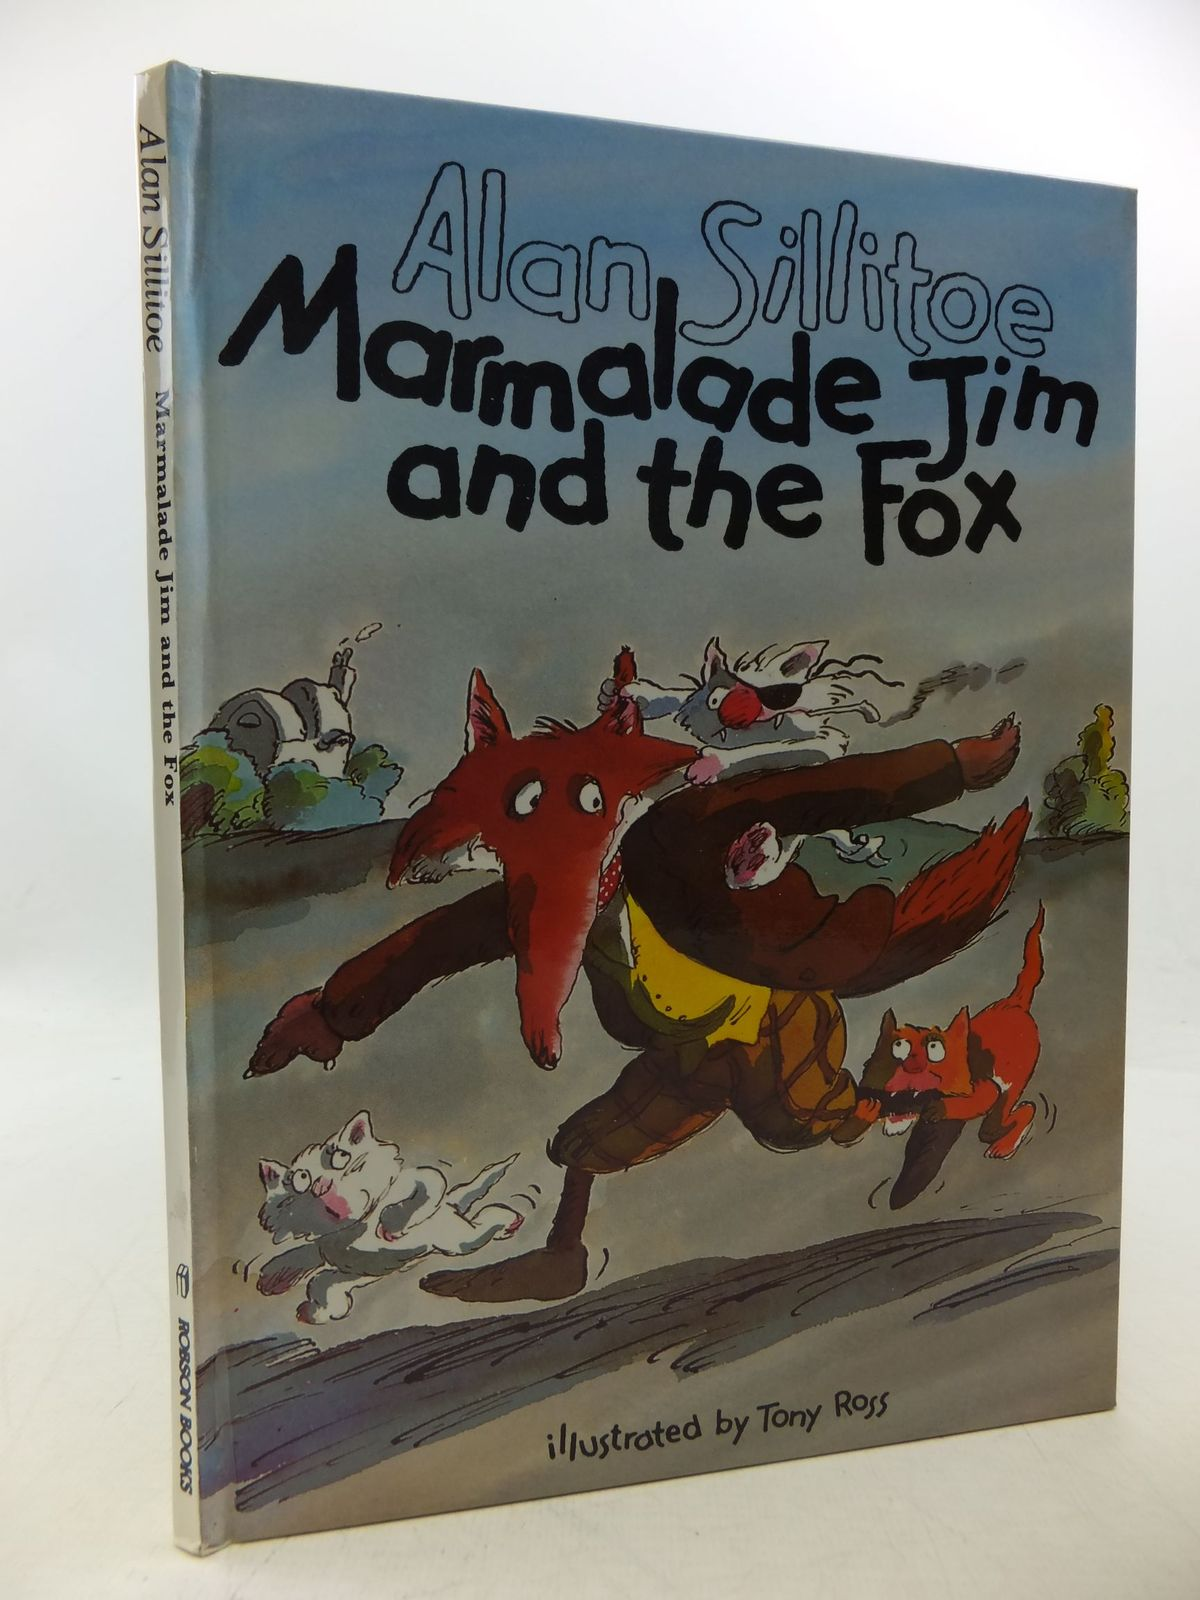 Photo of MARMALADE JIM AND THE FOX written by Sillitoe, Alan illustrated by Ross, Tony published by Robson Books (STOCK CODE: 1710120)  for sale by Stella & Rose's Books